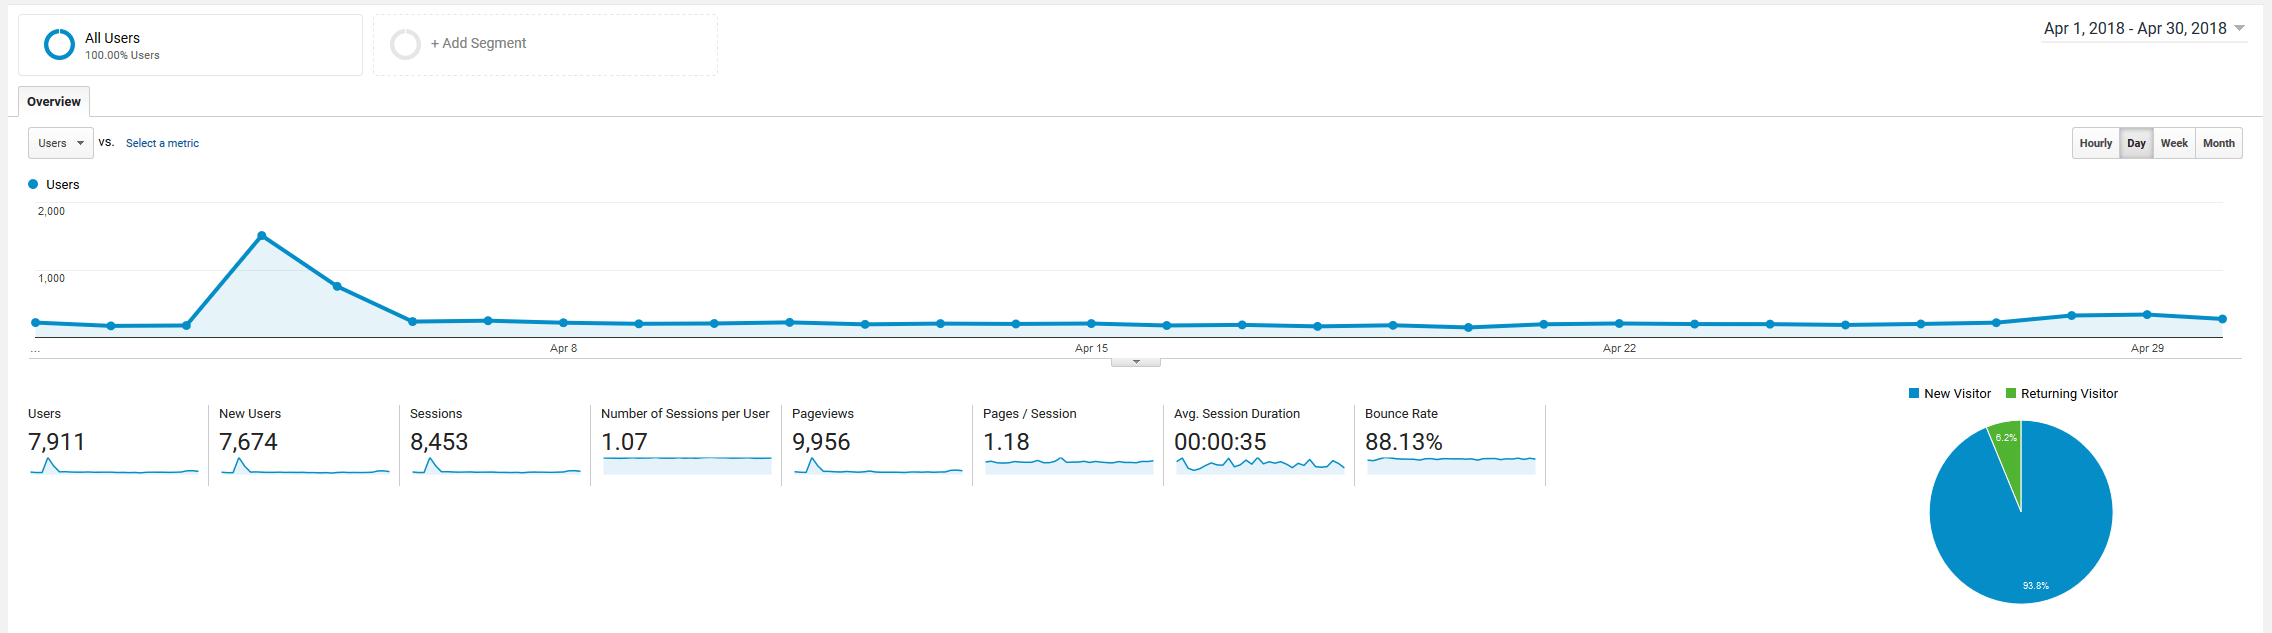 April 2018 Google Analytics roseclearfield.com | http://www.roseclearfield.com